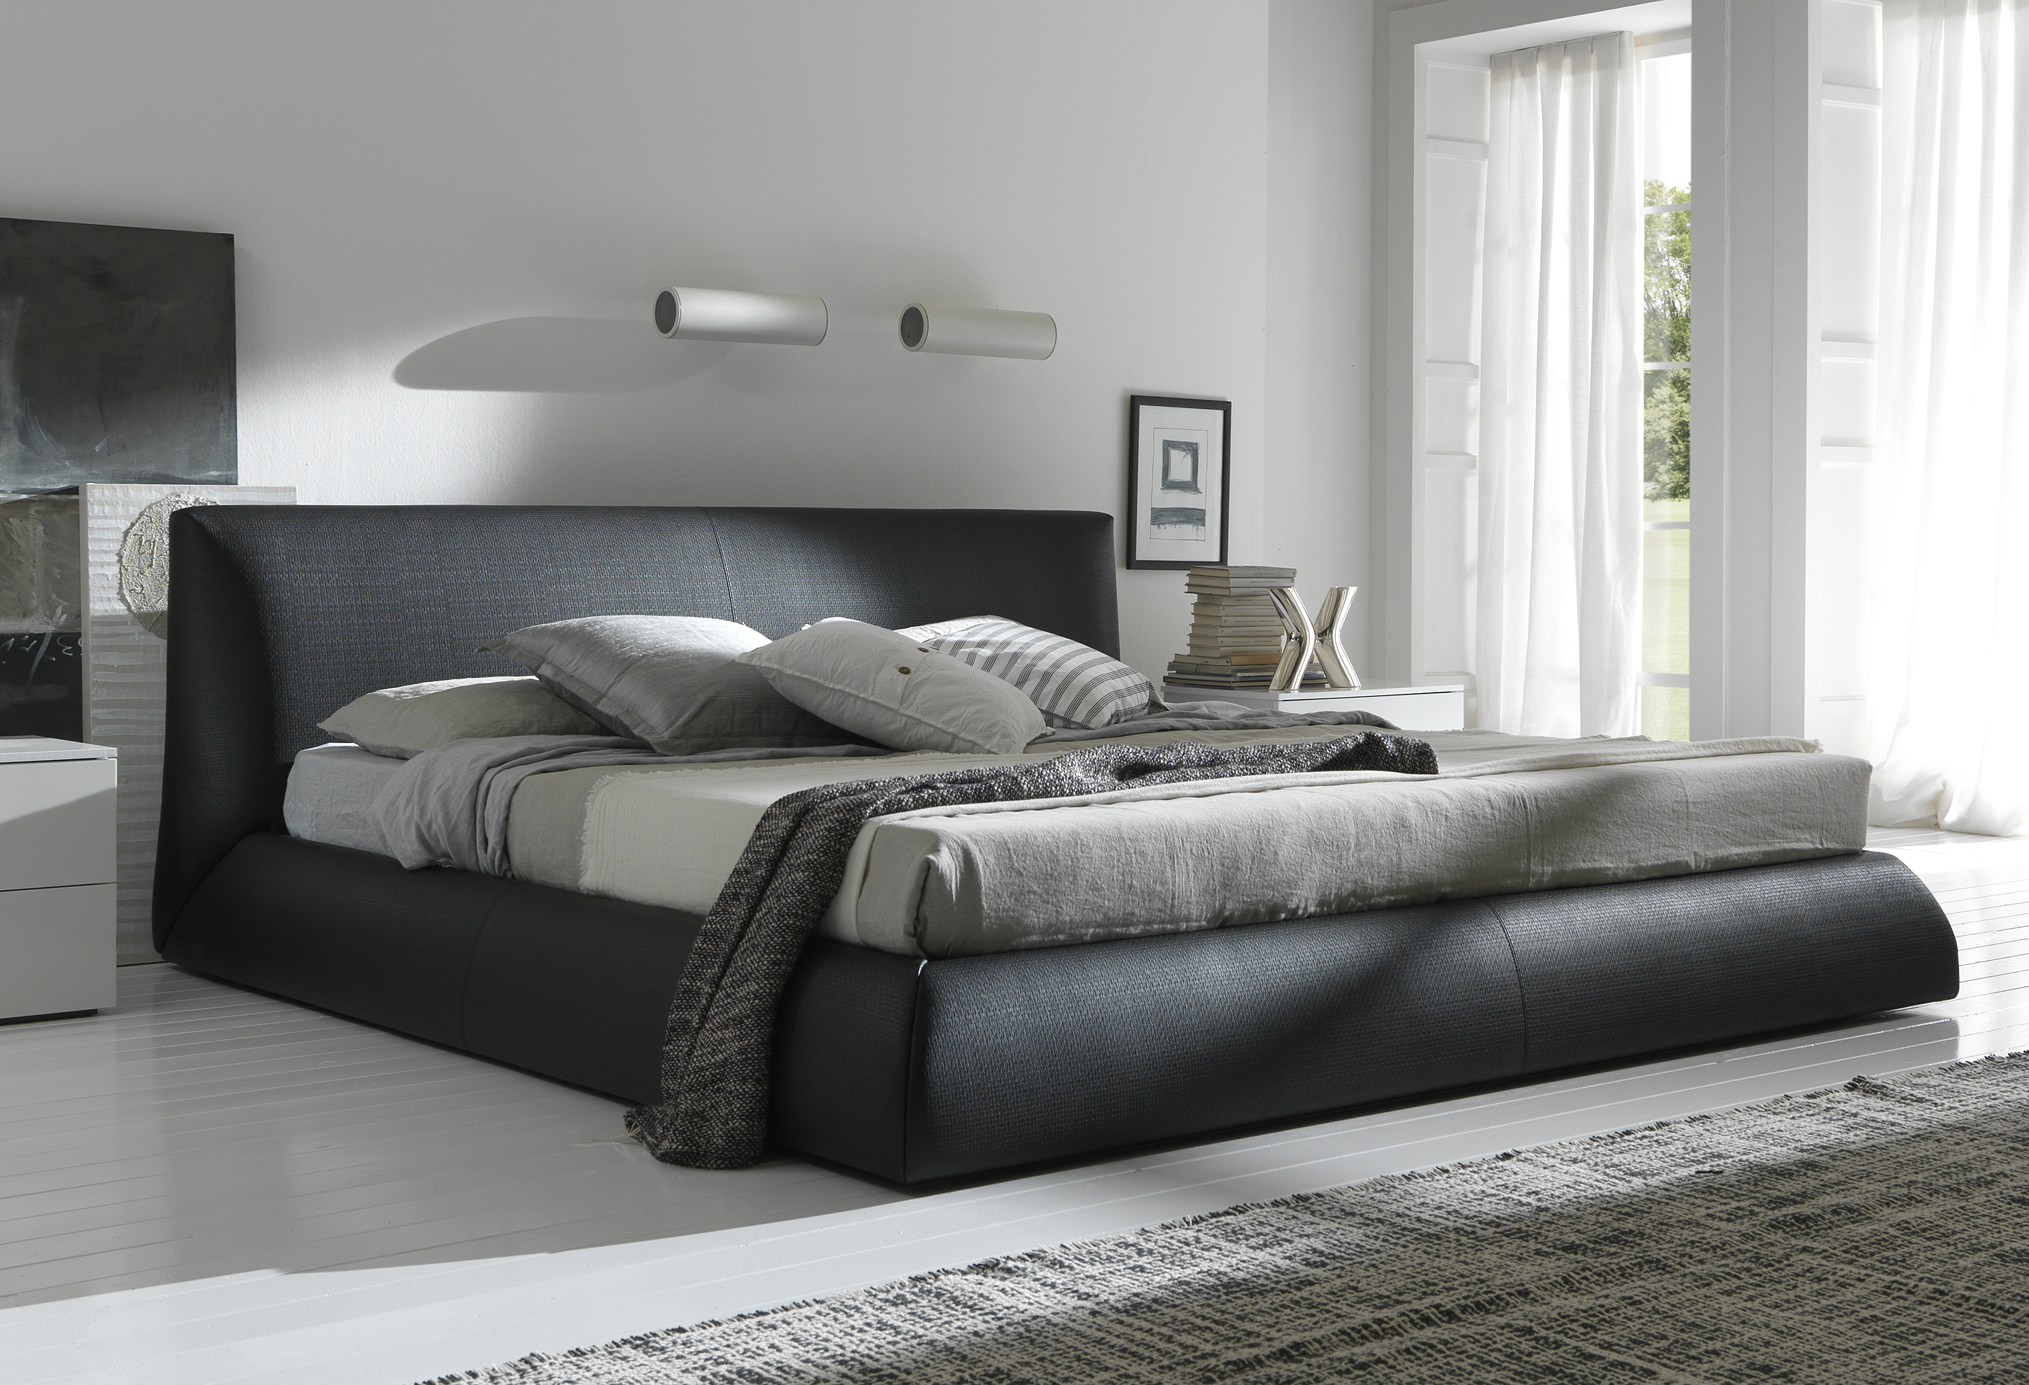 Contemporary king size bed with mattress king size bed and mattress deals king size beds for sale uzezvxh